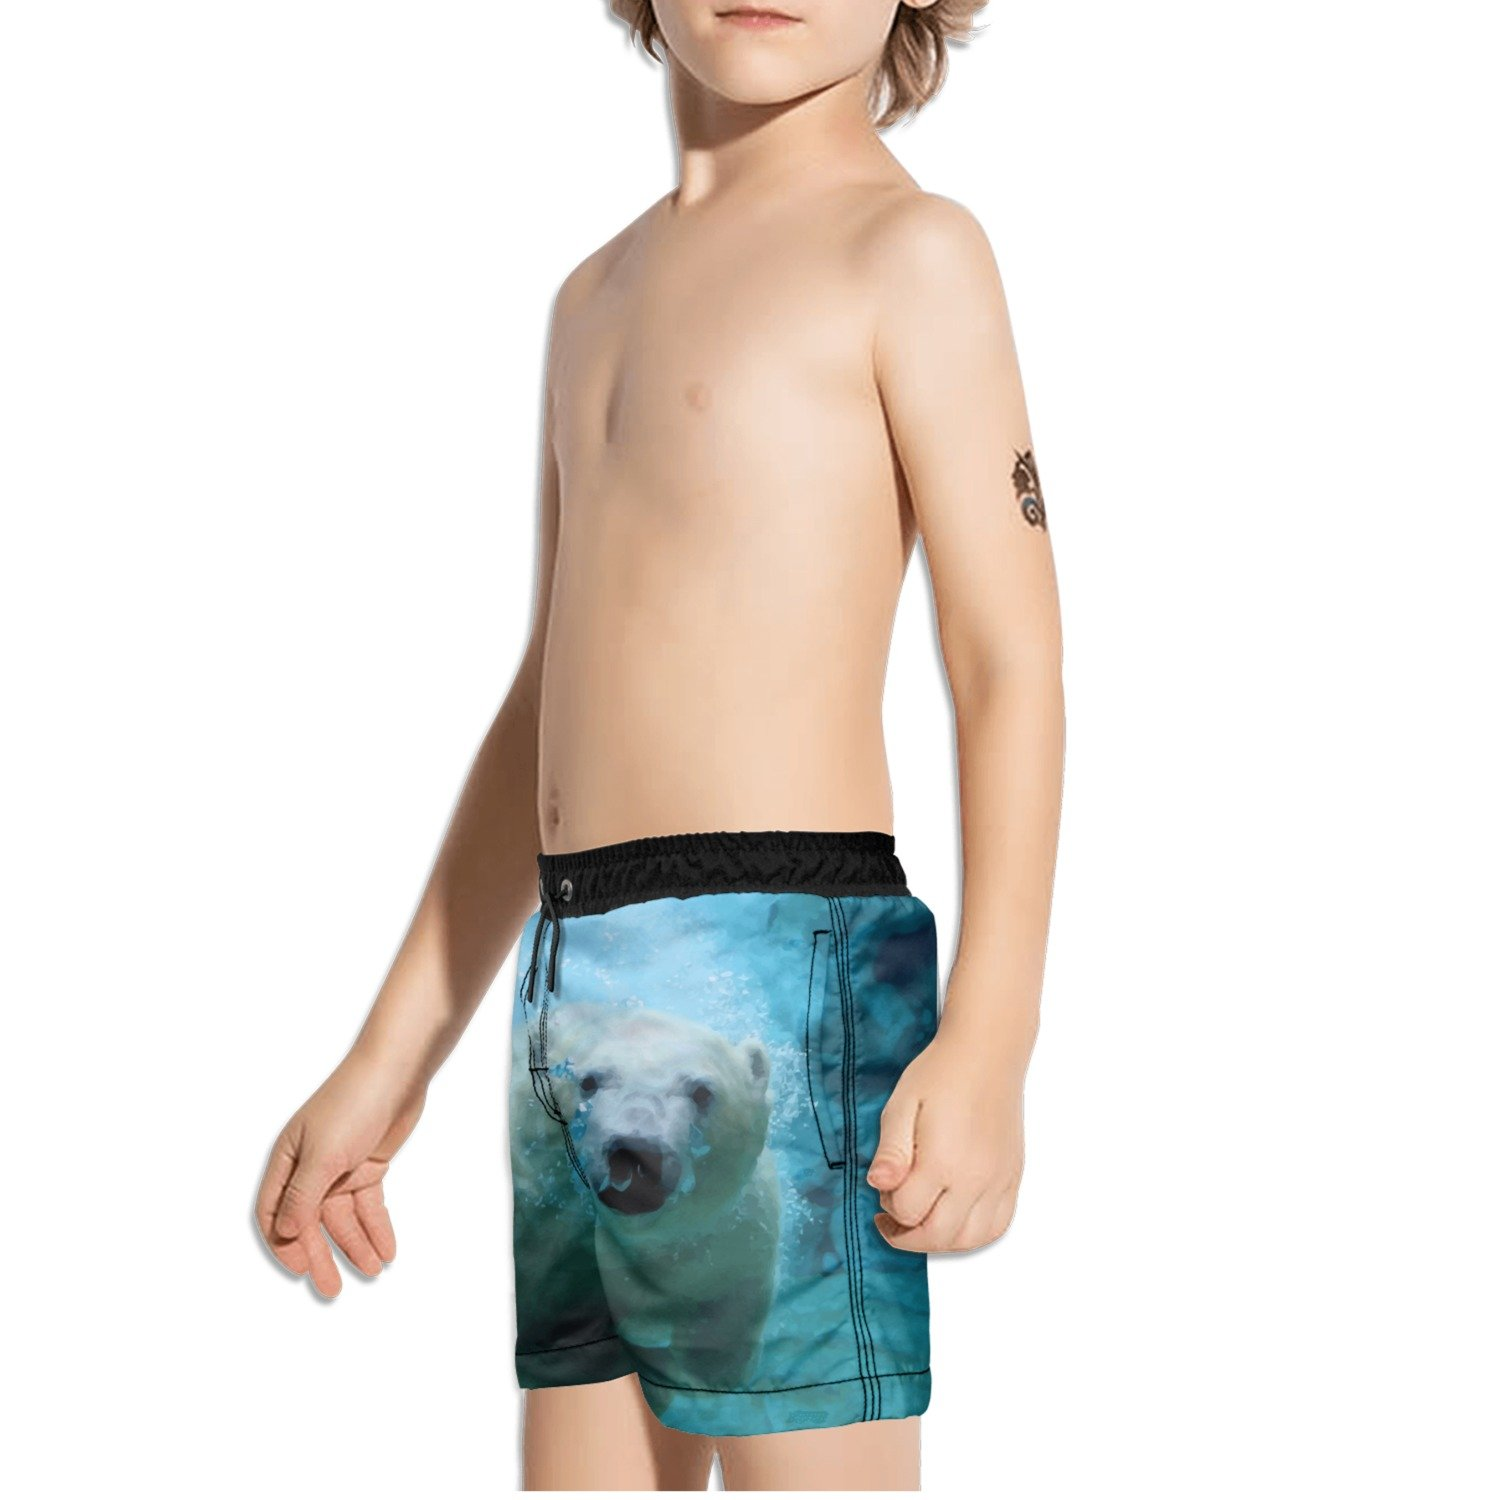 FullBo Polar Bear in Water Little Boys Short Swim Trunks Quick Dry Beach Shorts